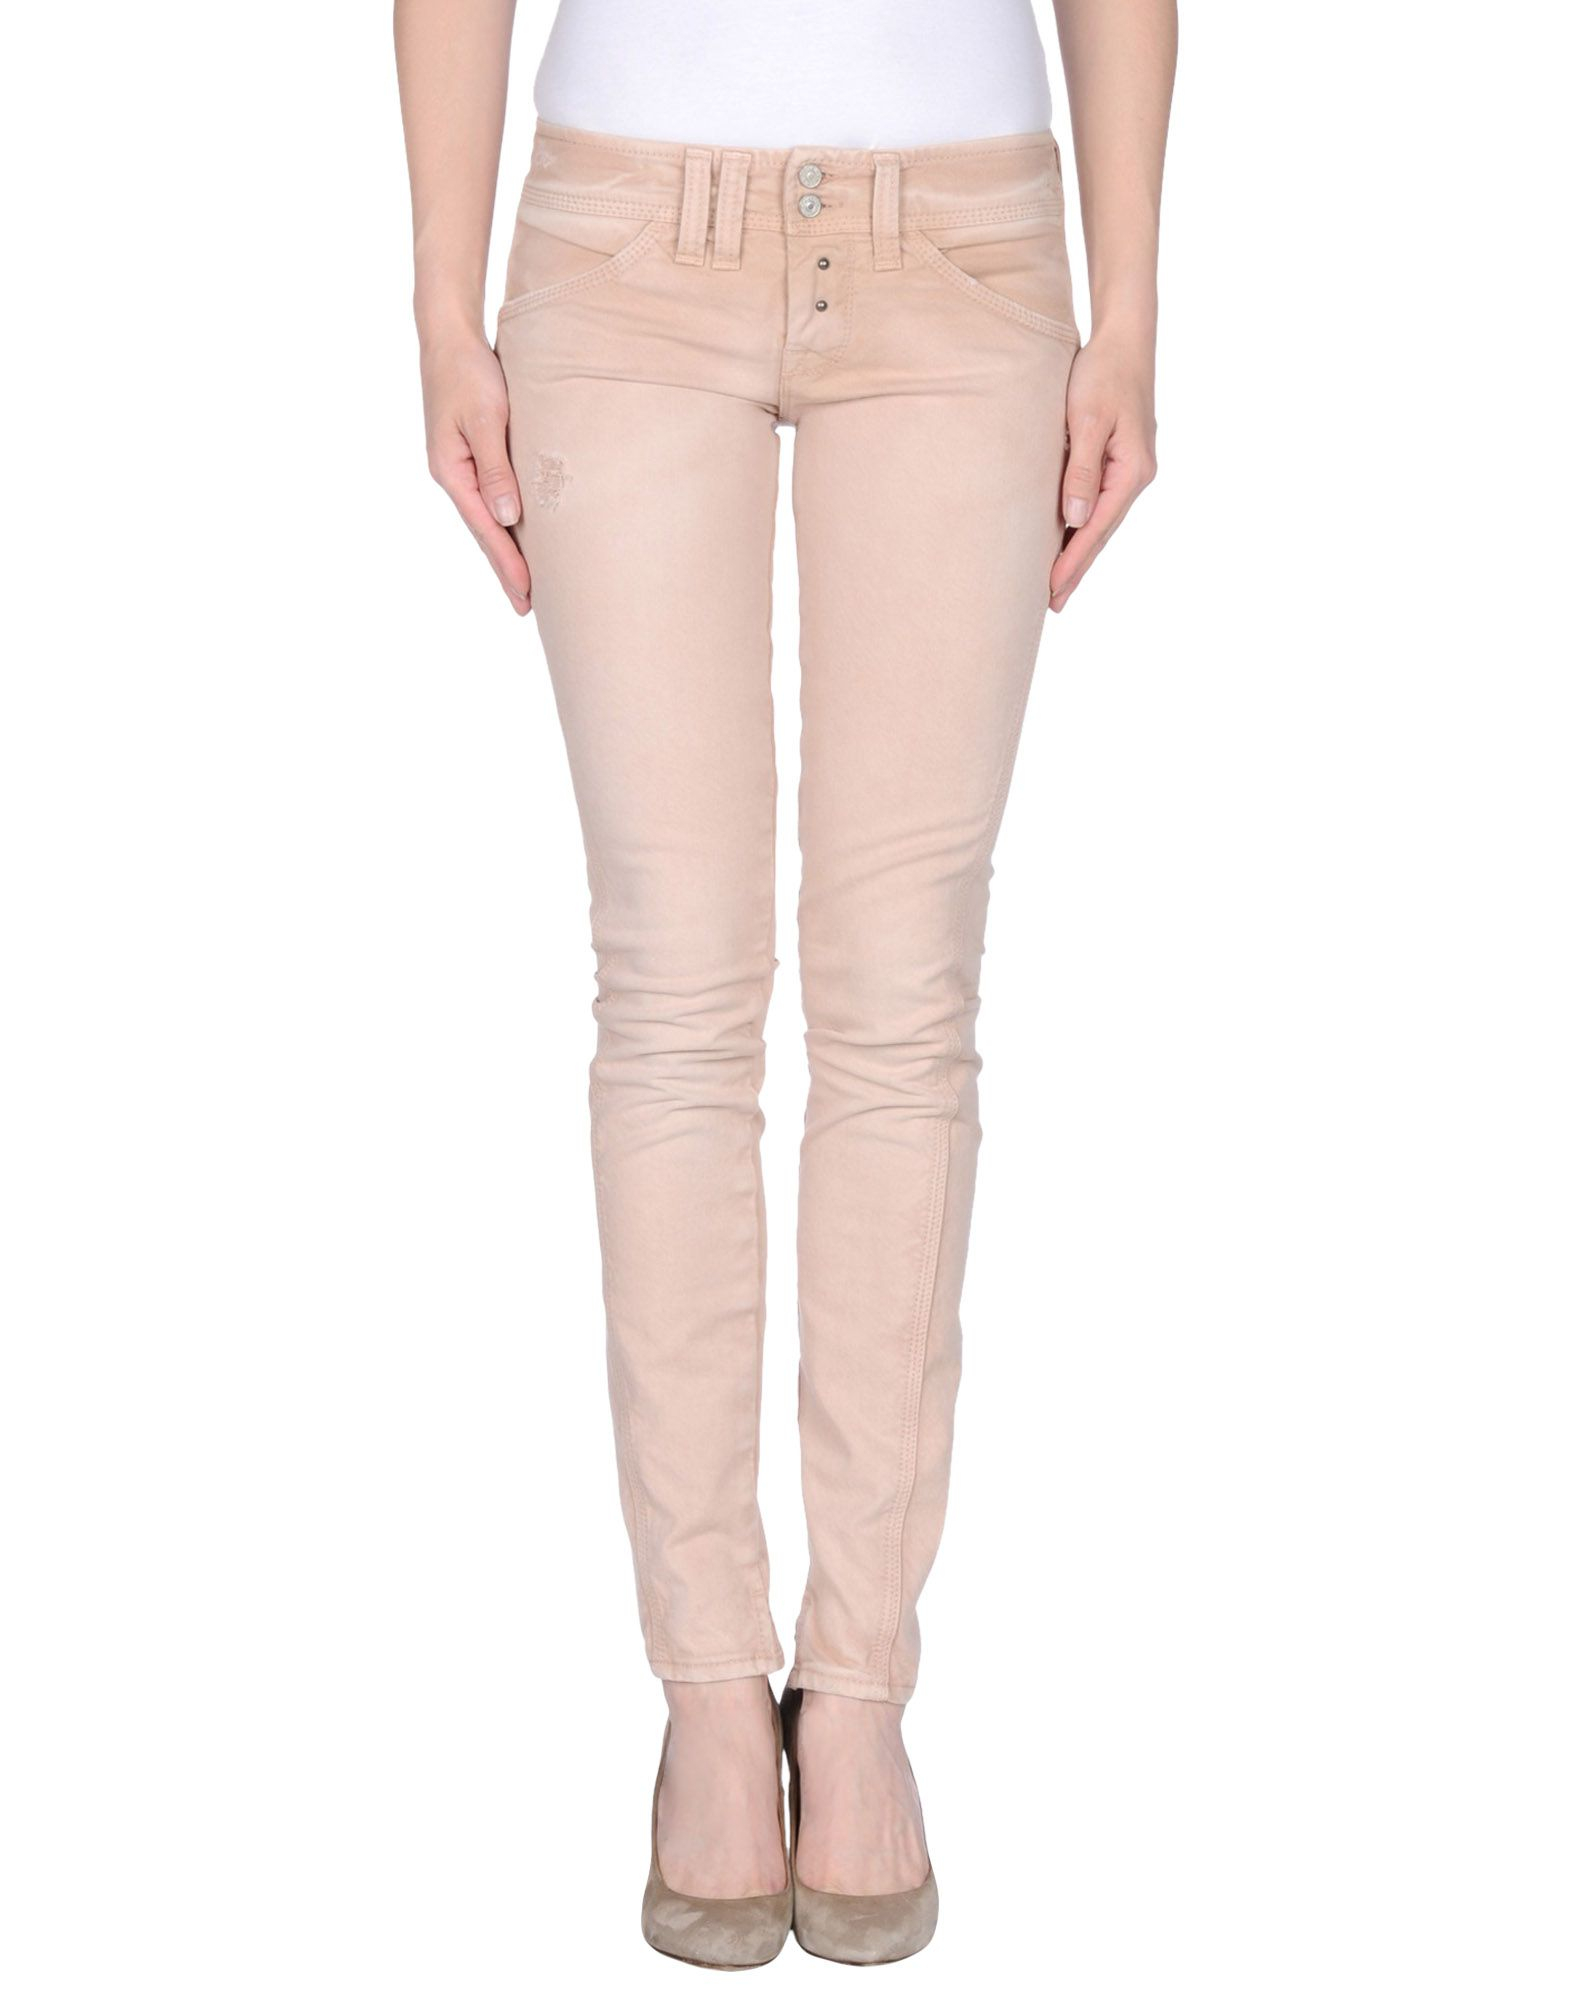 Cycle Denim Pants in Pink (Skin color) | Lyst